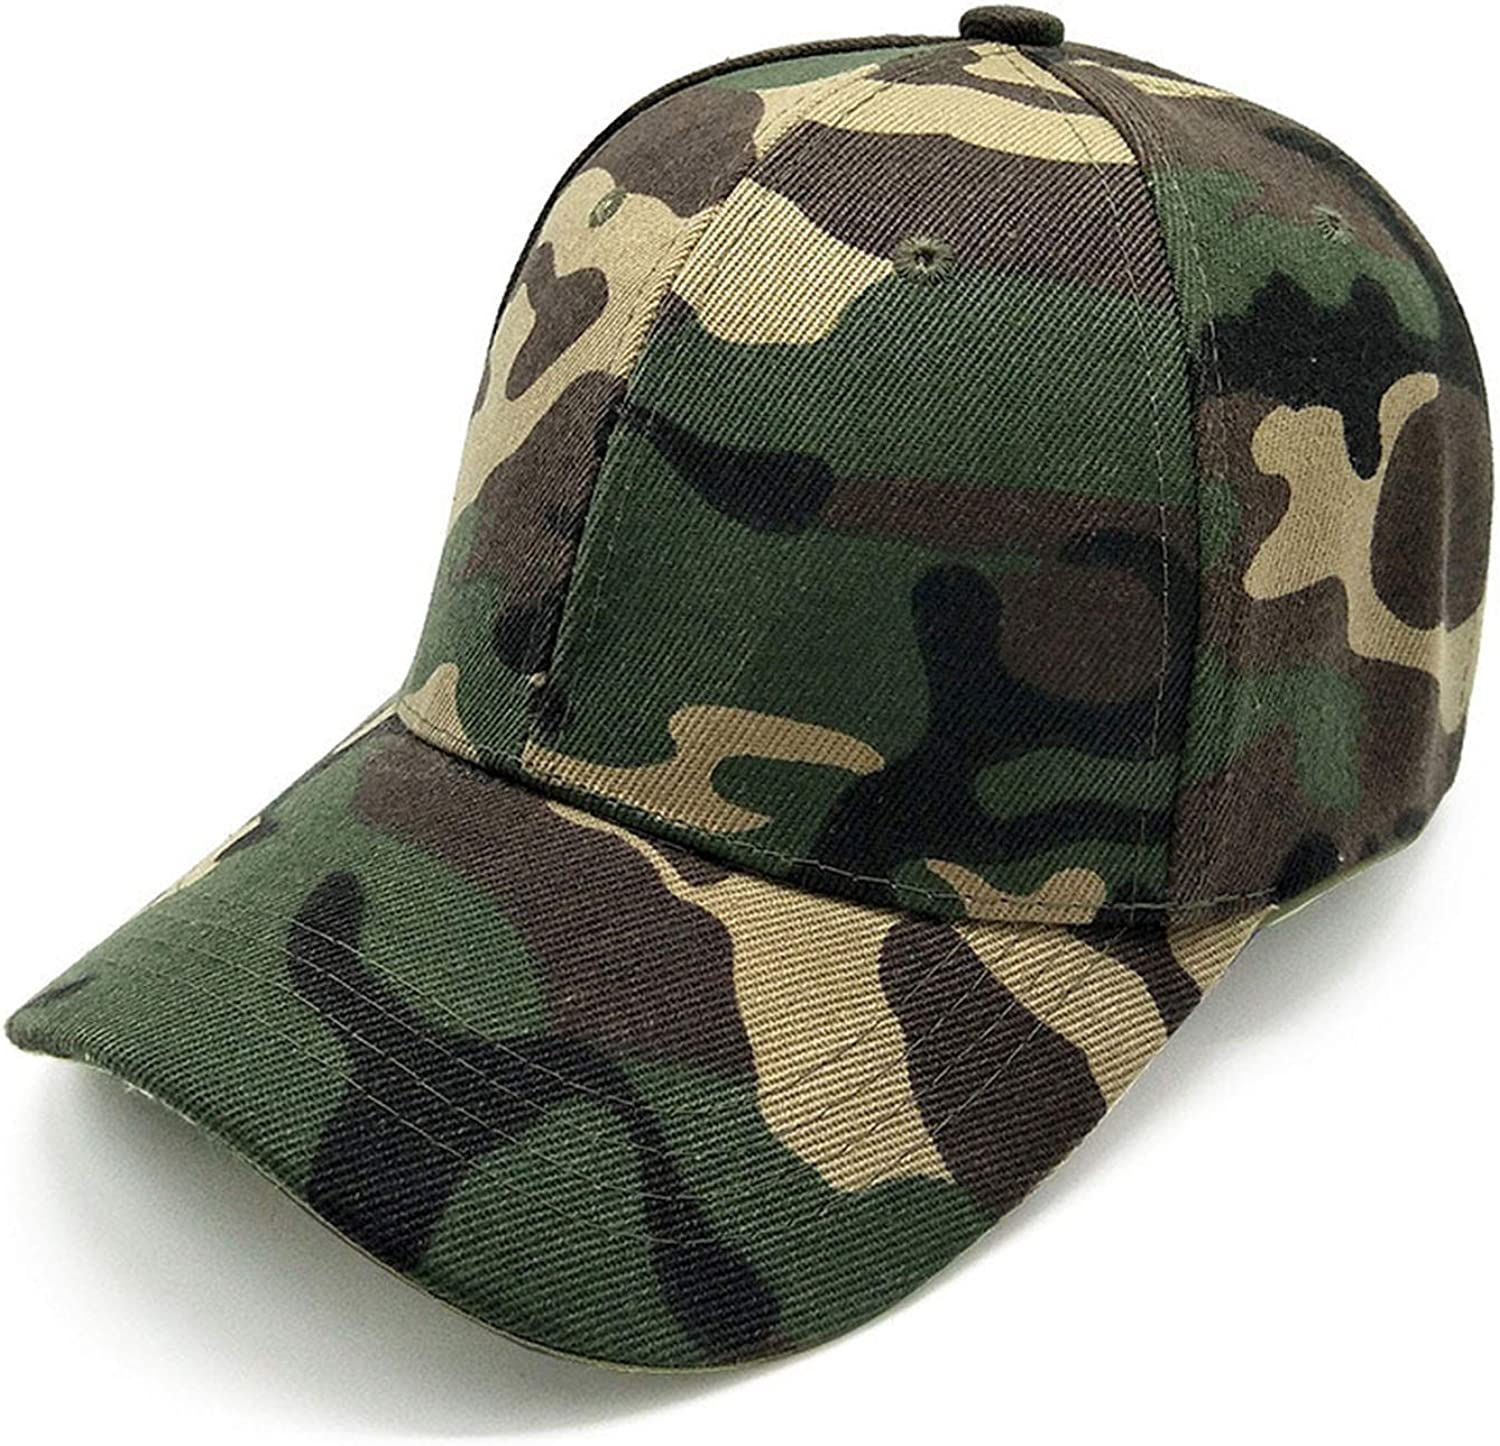 New Cotton Hard Lined Baseball Cap Outdoor Leaf Camouflage Fishing hat Camouflage Sunshade Flat net Cap